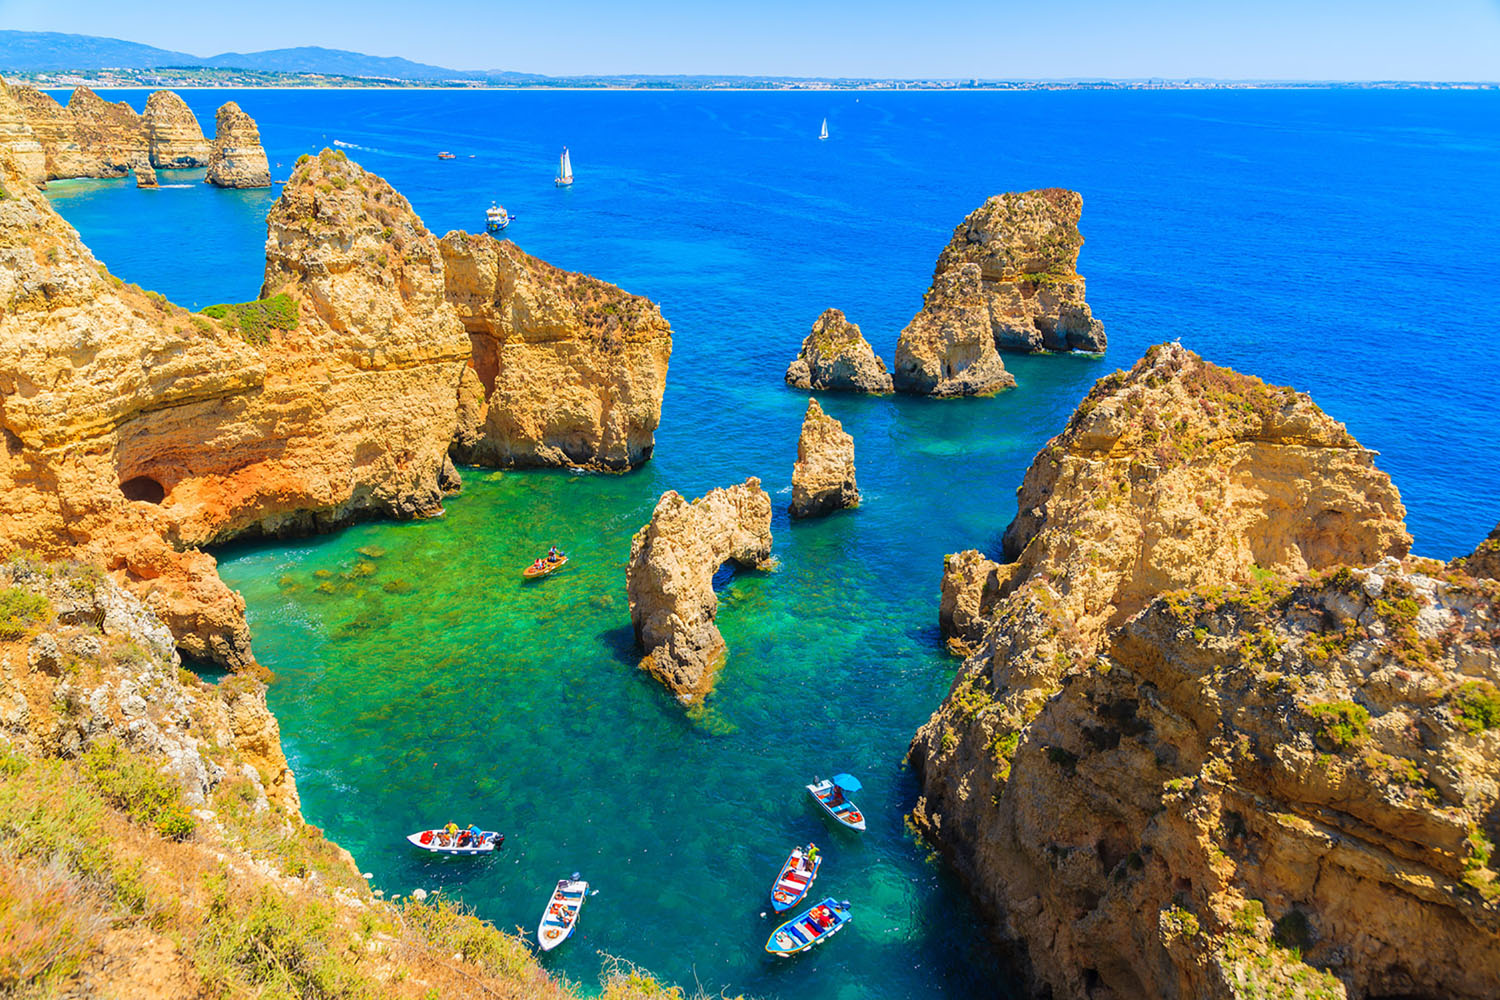 Portimao, Portugal is a destination that has it all: beautiful beaches, delectable cuisine, charming villages, and great local wine. Spend your day sunbathing, wine tasting, dolphin watching—whatever your heart desires.